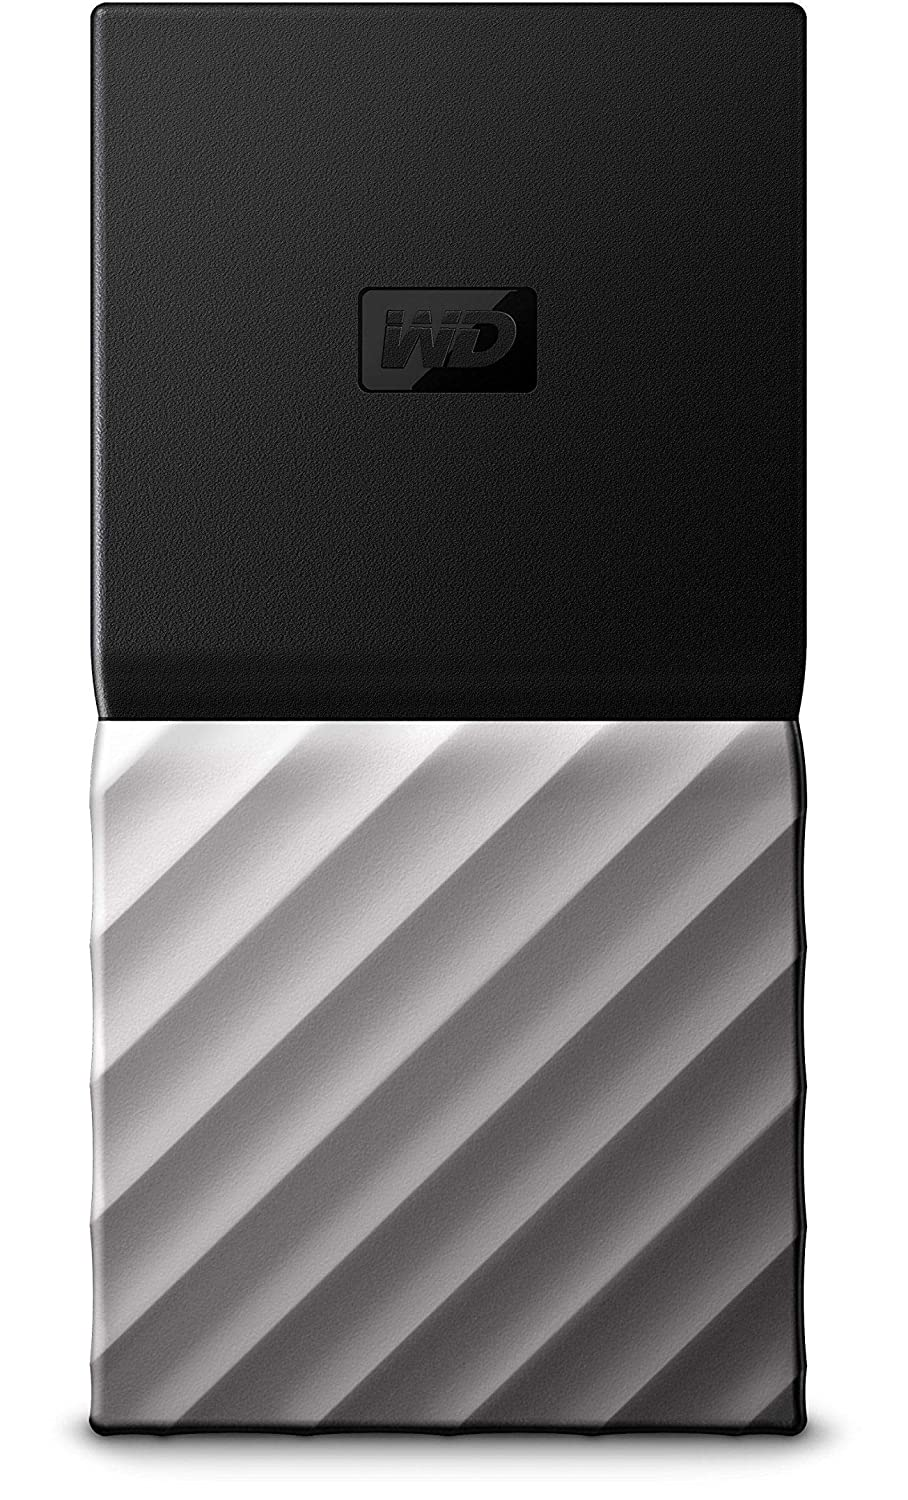 Western Digital My Passport 256GB External Solid State Drive (Black)